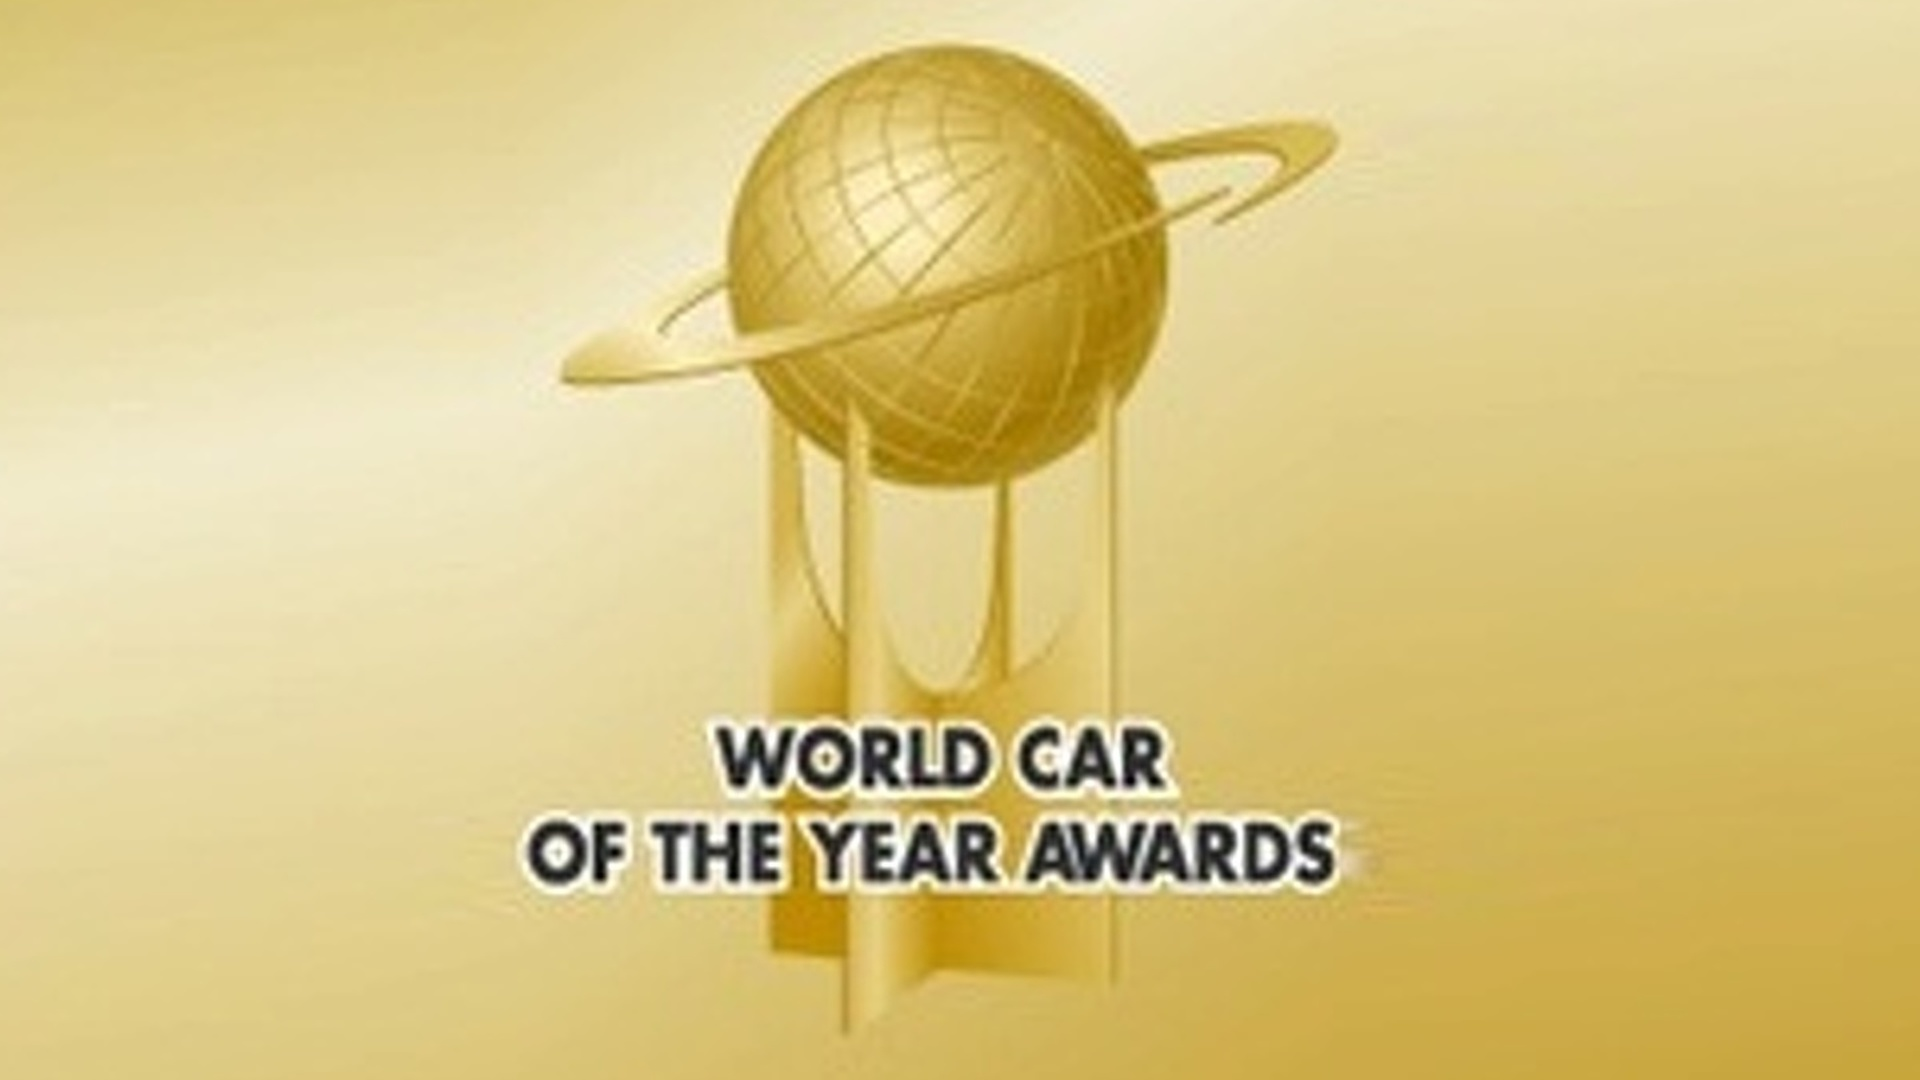 Finalists Announced for 2009 World Car of the Year Award